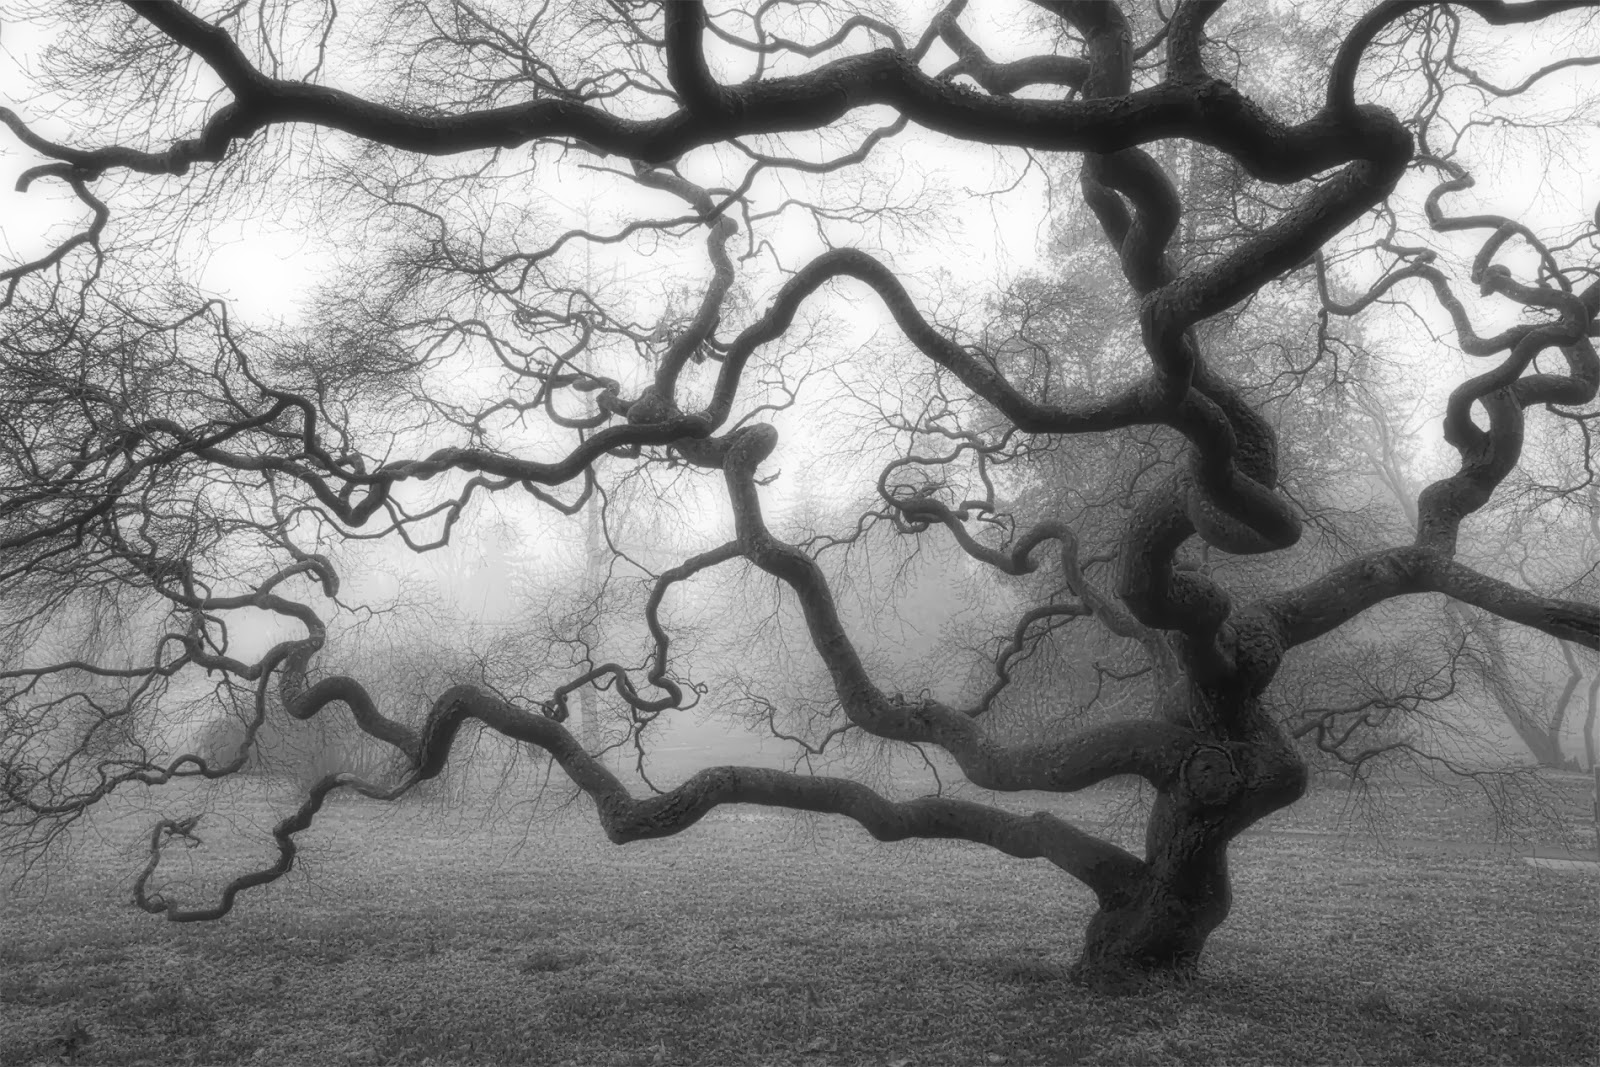 josh friedman photography the tree ch ch ch ch changes winter foggy morning